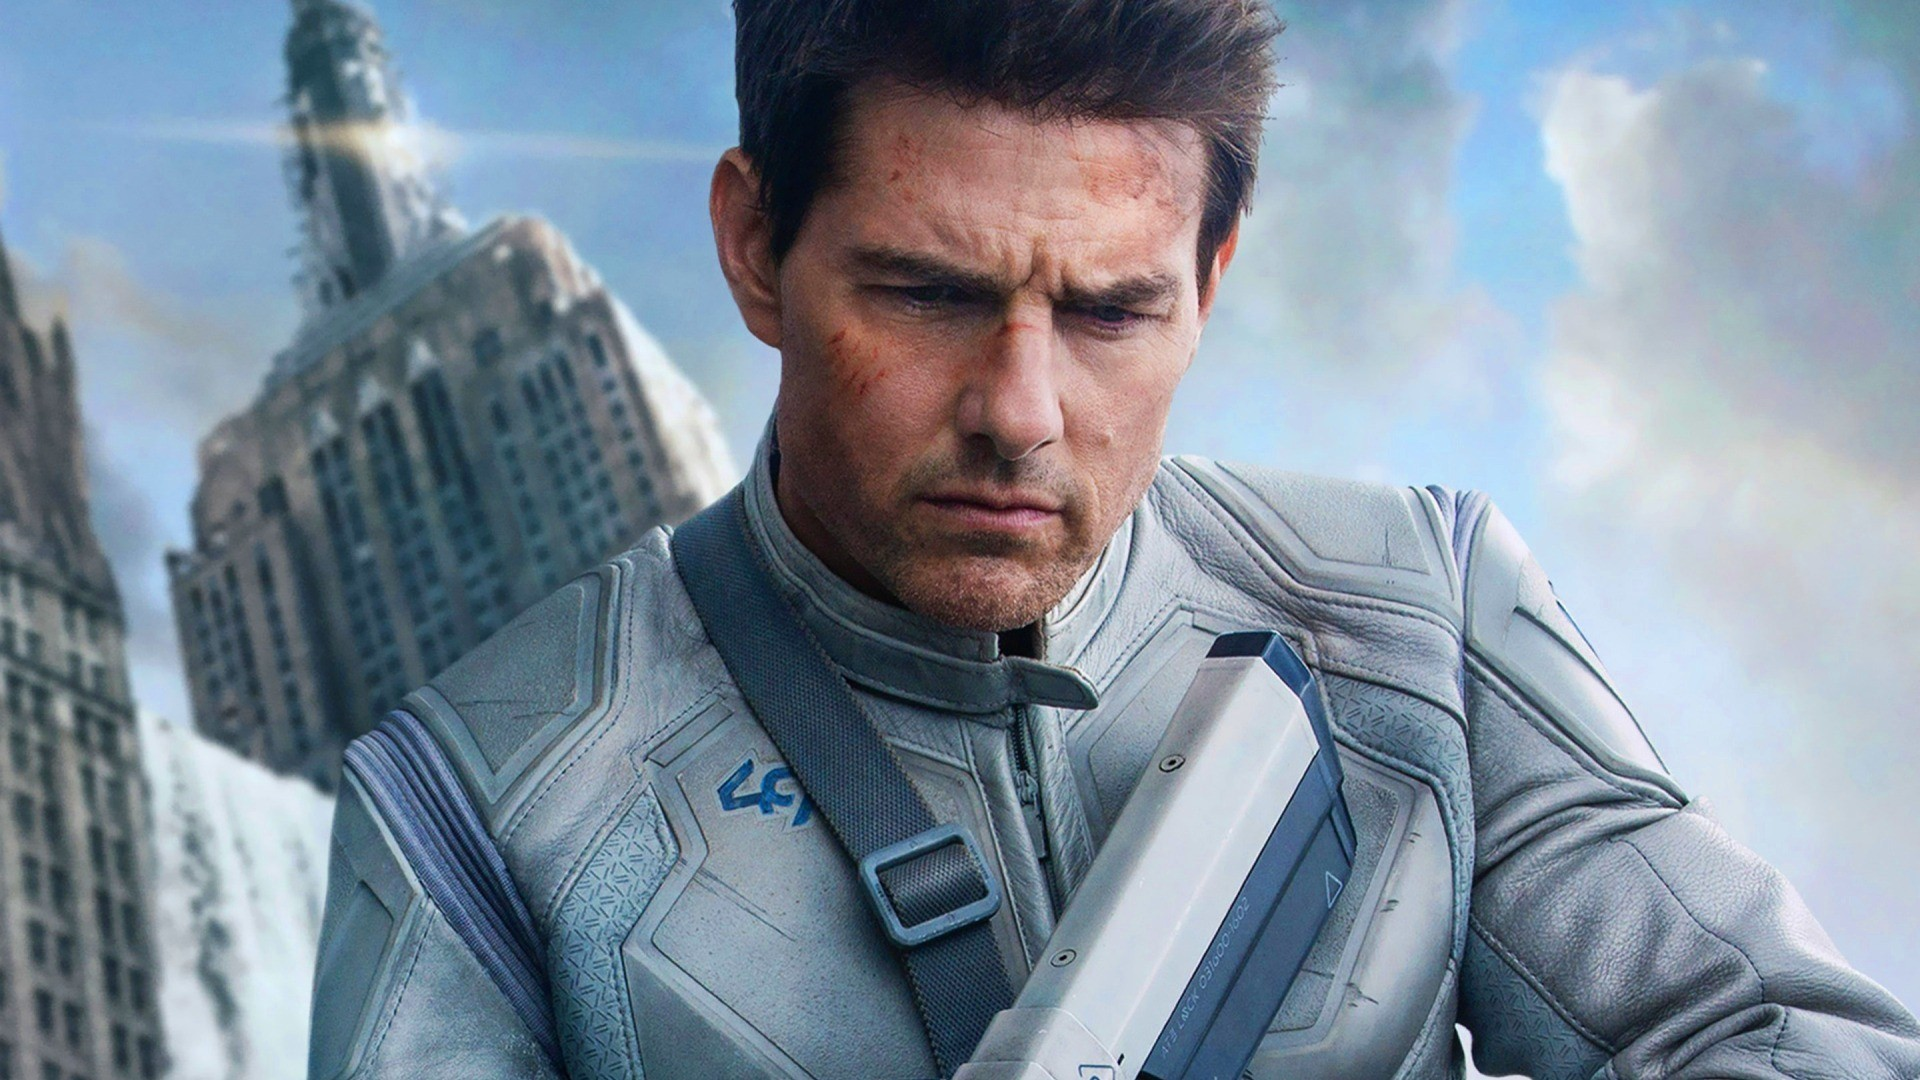 Oblivion Movie Tom Cruise Wallpaper HD Wallpapers 1920x1080